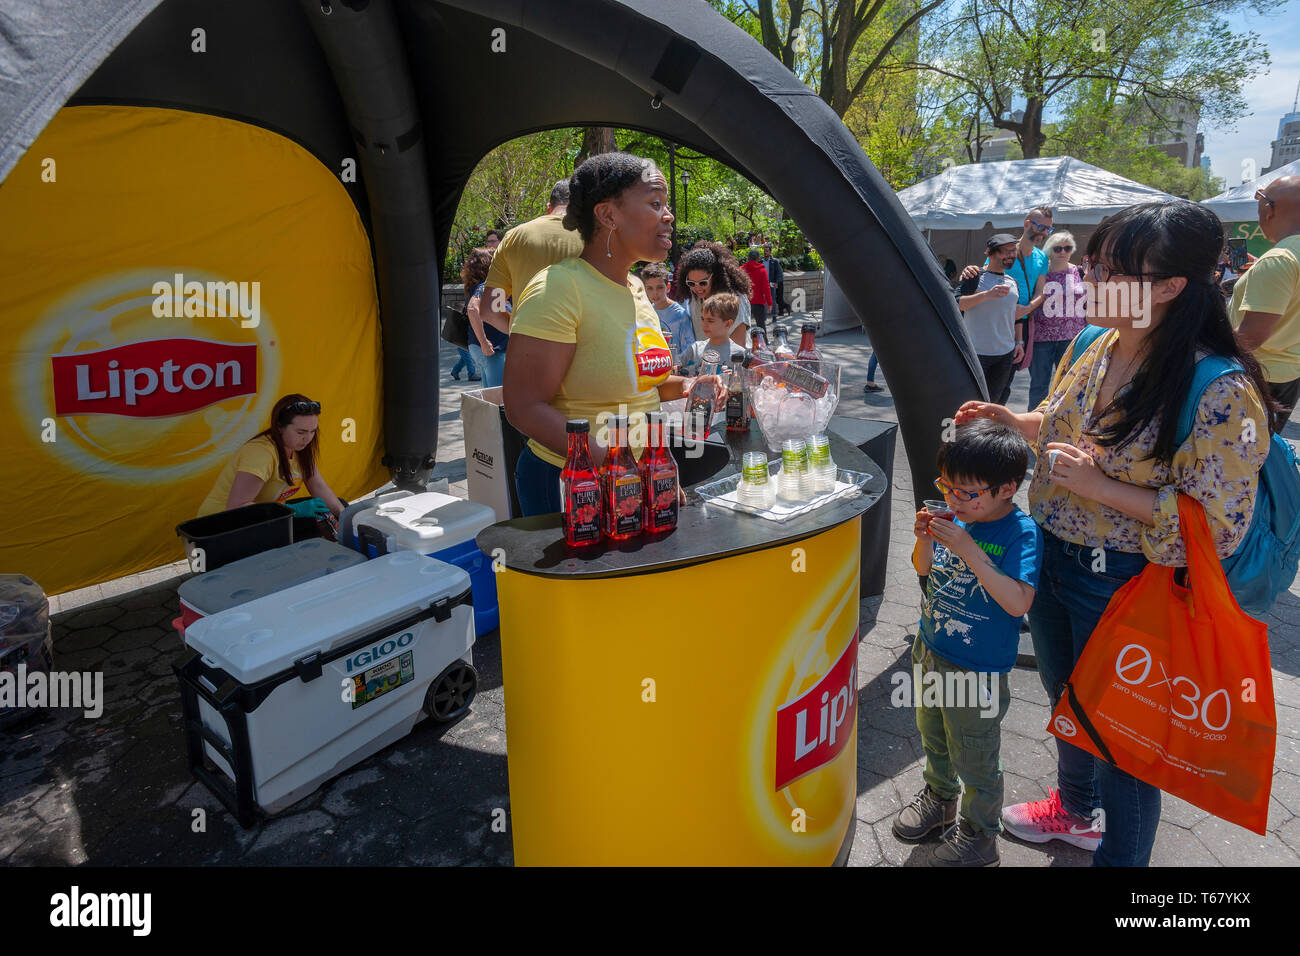 Workers distribute samples of Unilever's Lipton Pure Leaf tea brand at the Earth Day Street Fair in Union Square Park in New York on Tuesday, April 23, 2019. The fair featured booths from various companies and organizations touting their environmental awareness. (© Richard B. Levine) - Stock Image